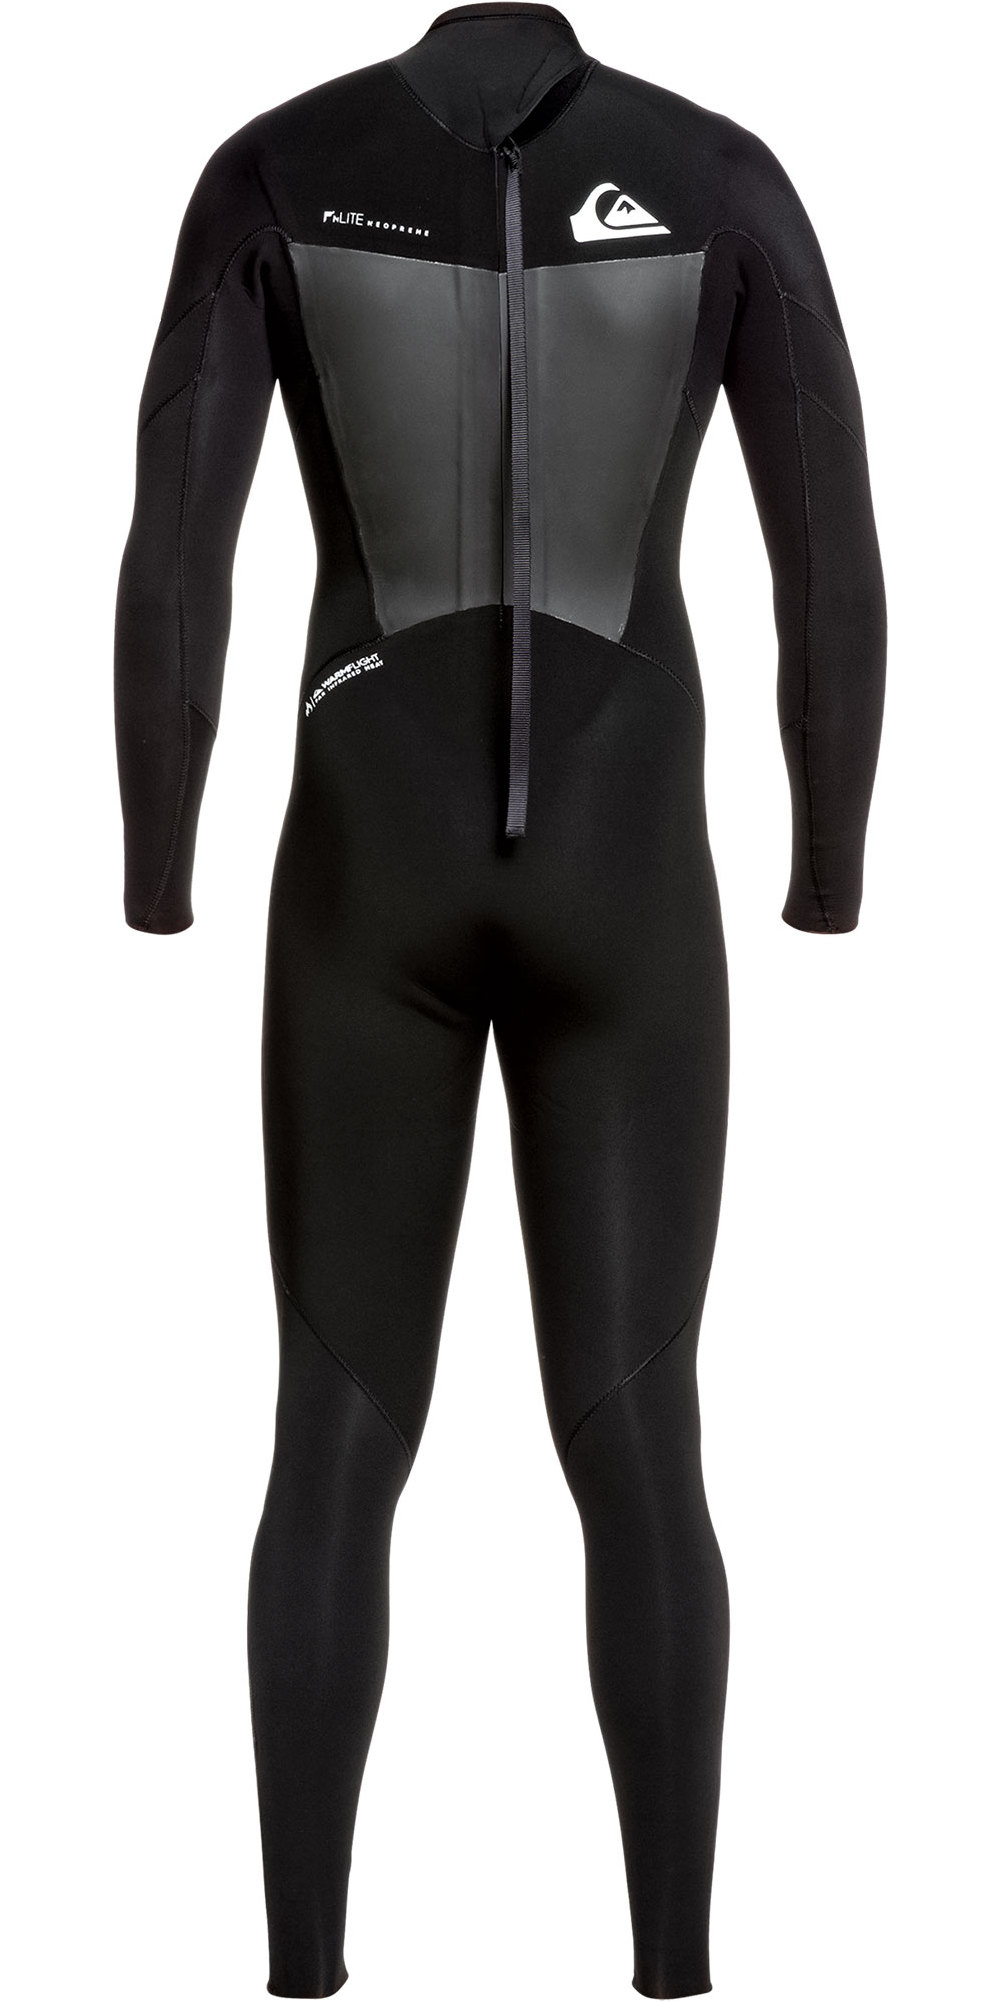 2020 Quiksilver Mens Syncro 4/3mm Back Zip Wetsuit Black / White EQYW103086